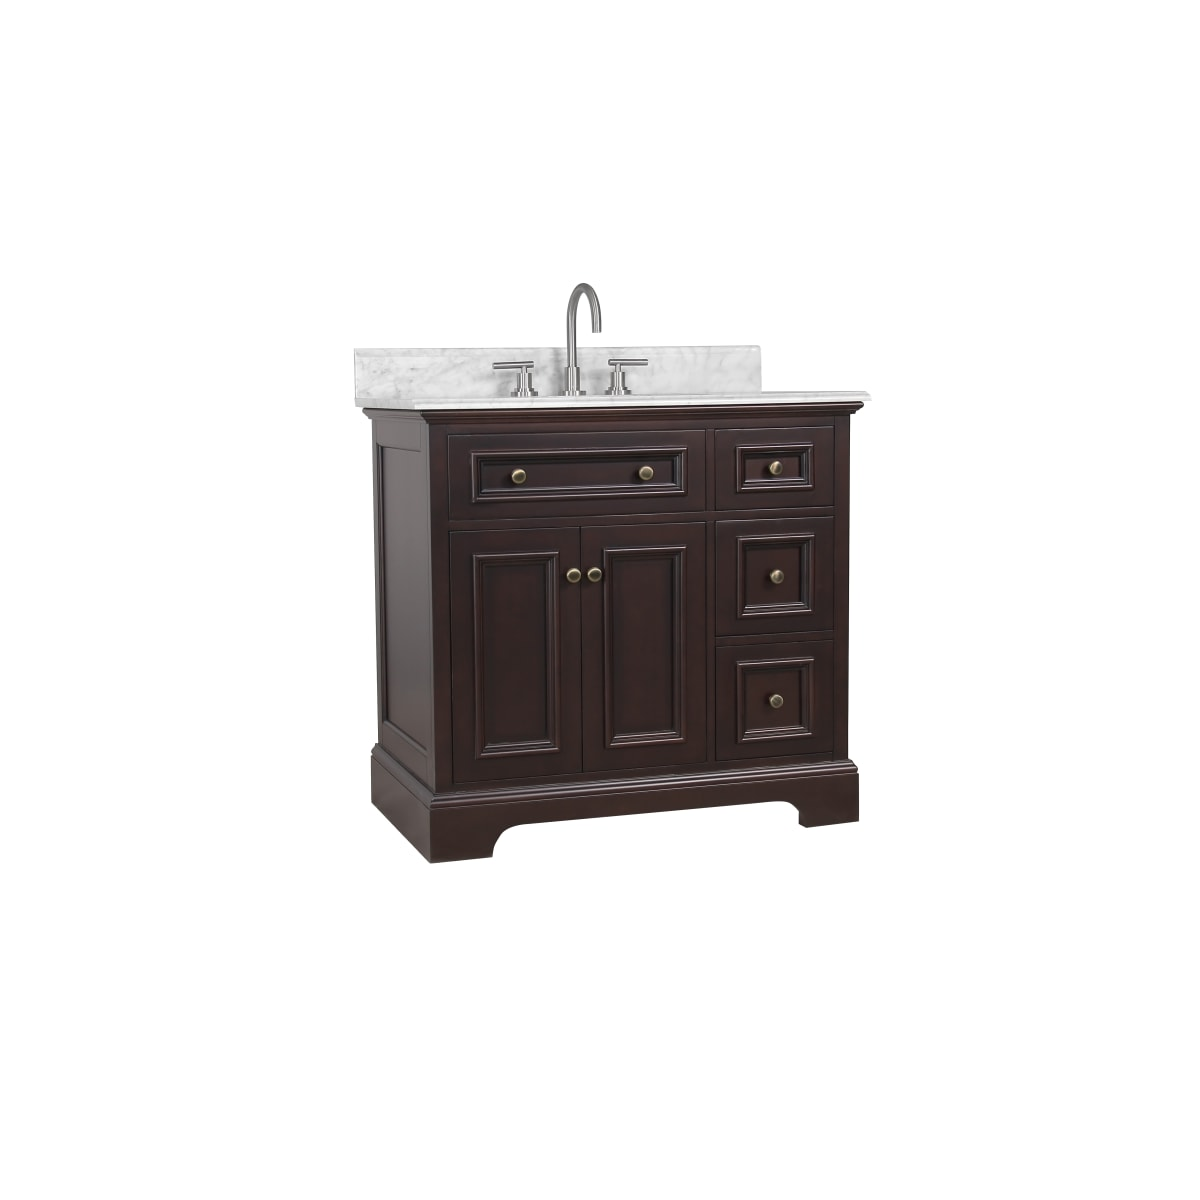 "Jacuzzi Salone 36"" Free Standing Single Basin Vanity Set with Wood Cabinet and Marble Vanity Top"